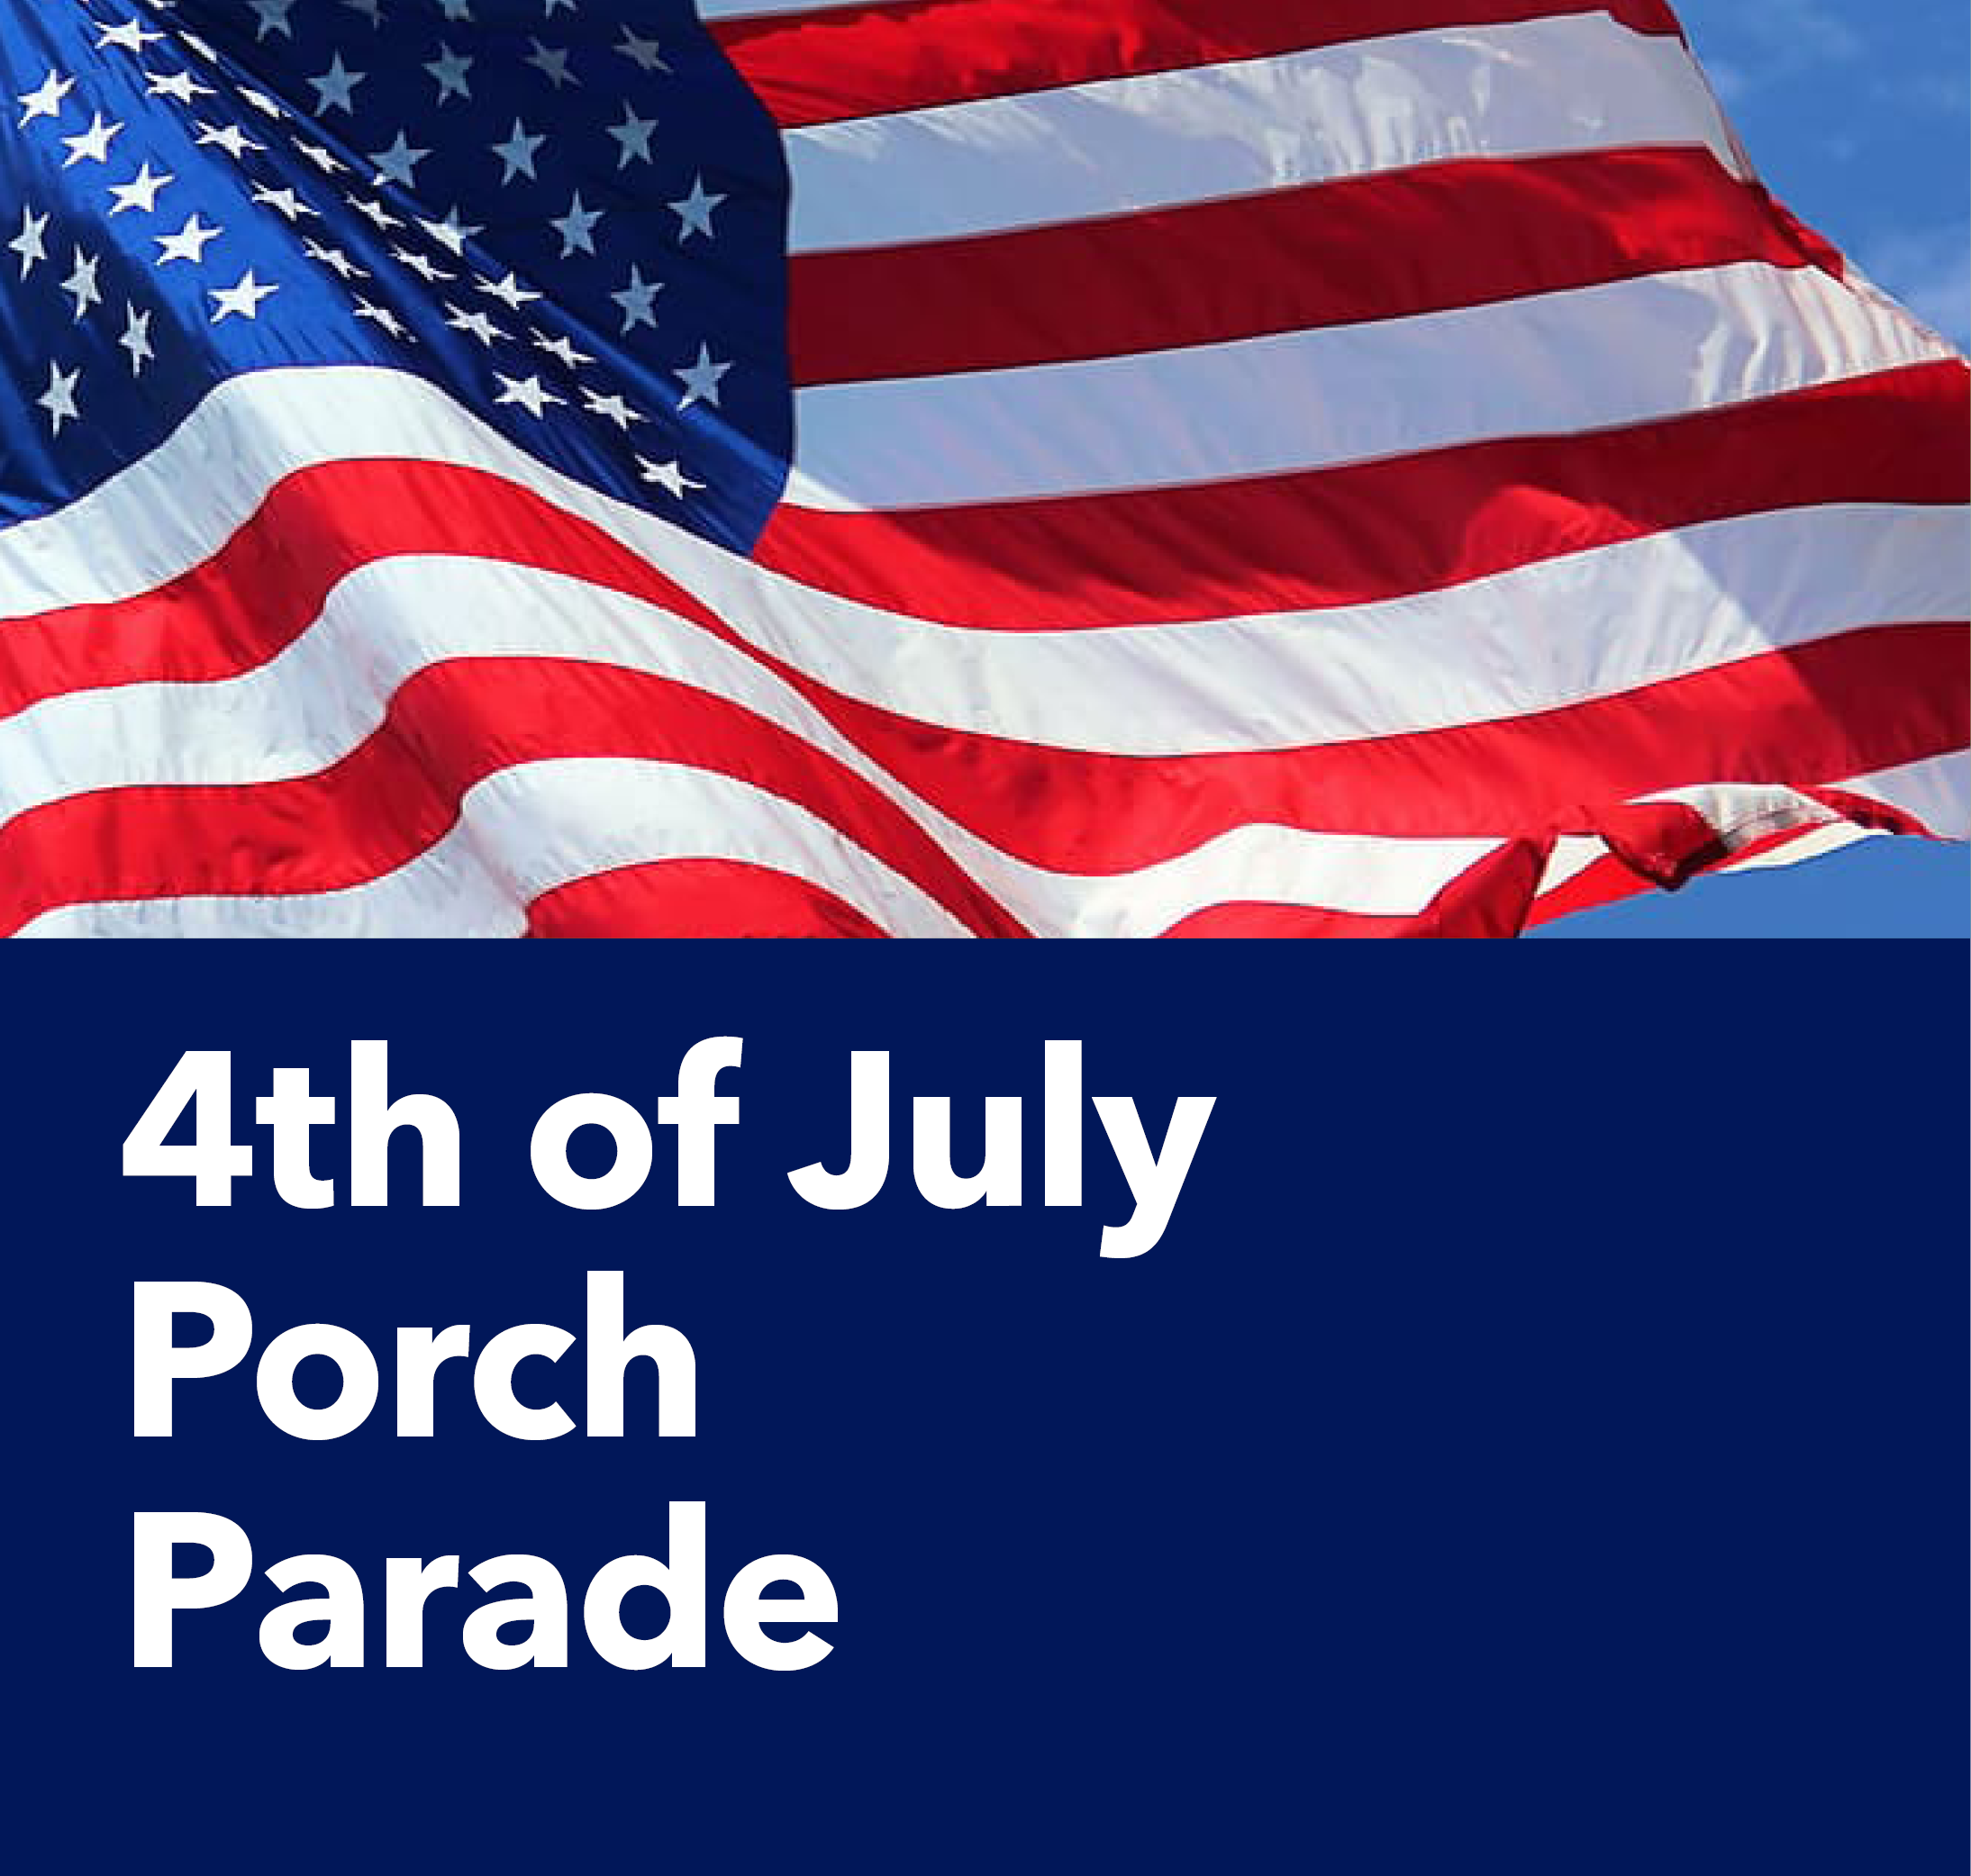 Porch Parade